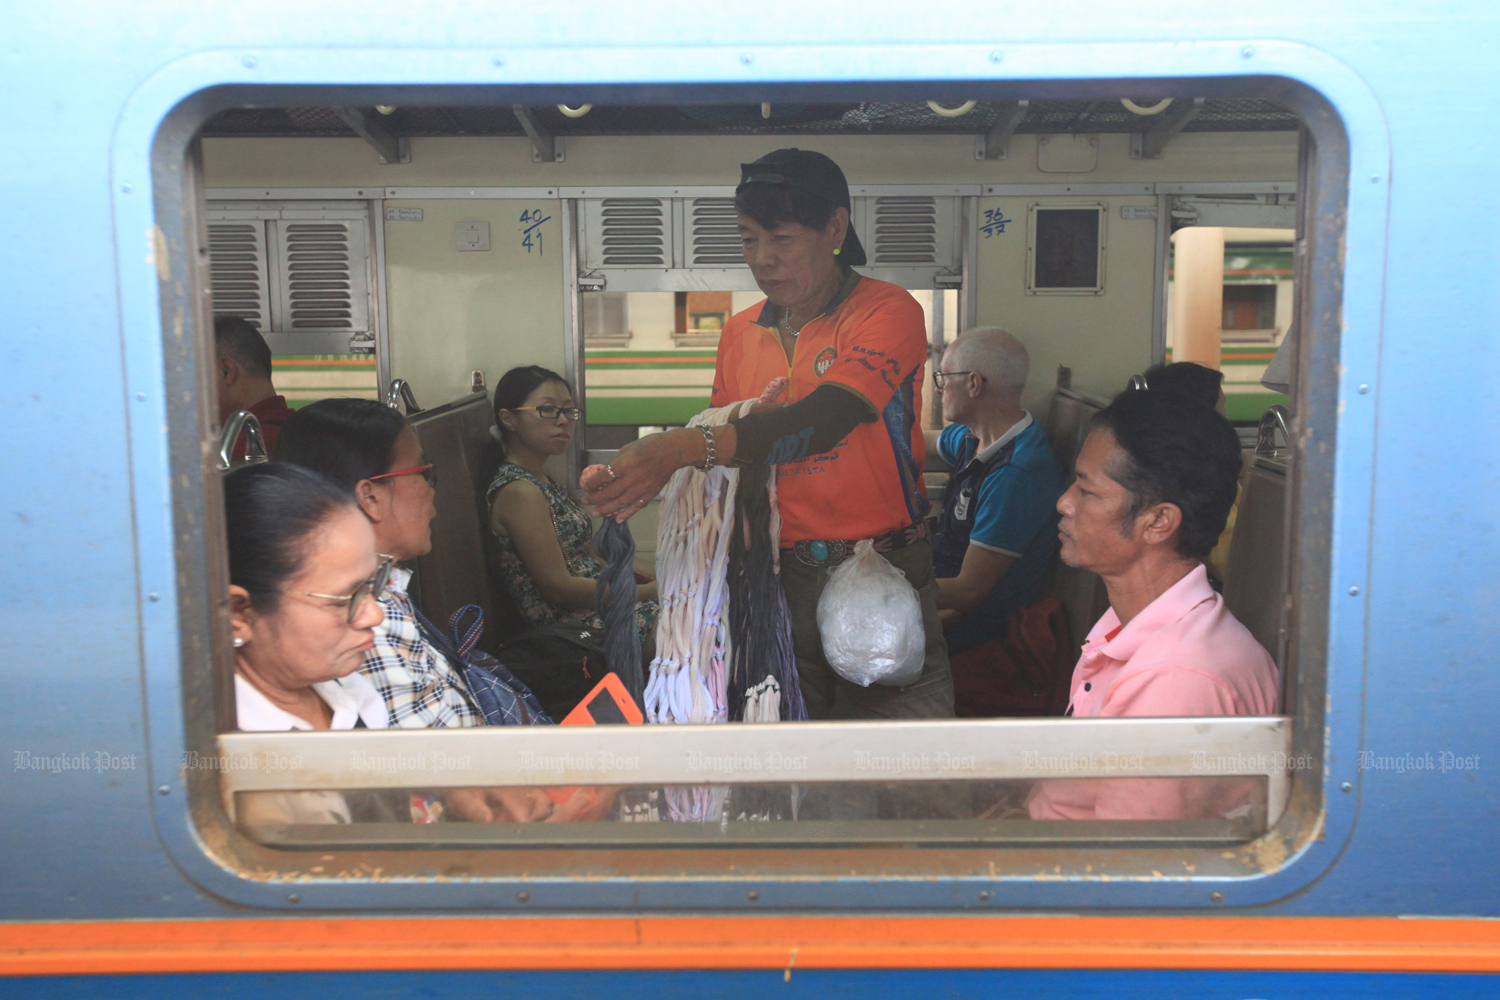 The State Railway of Thailand wants to win back customers from low-cost airlines with better trains. (Bangkok Post photo)